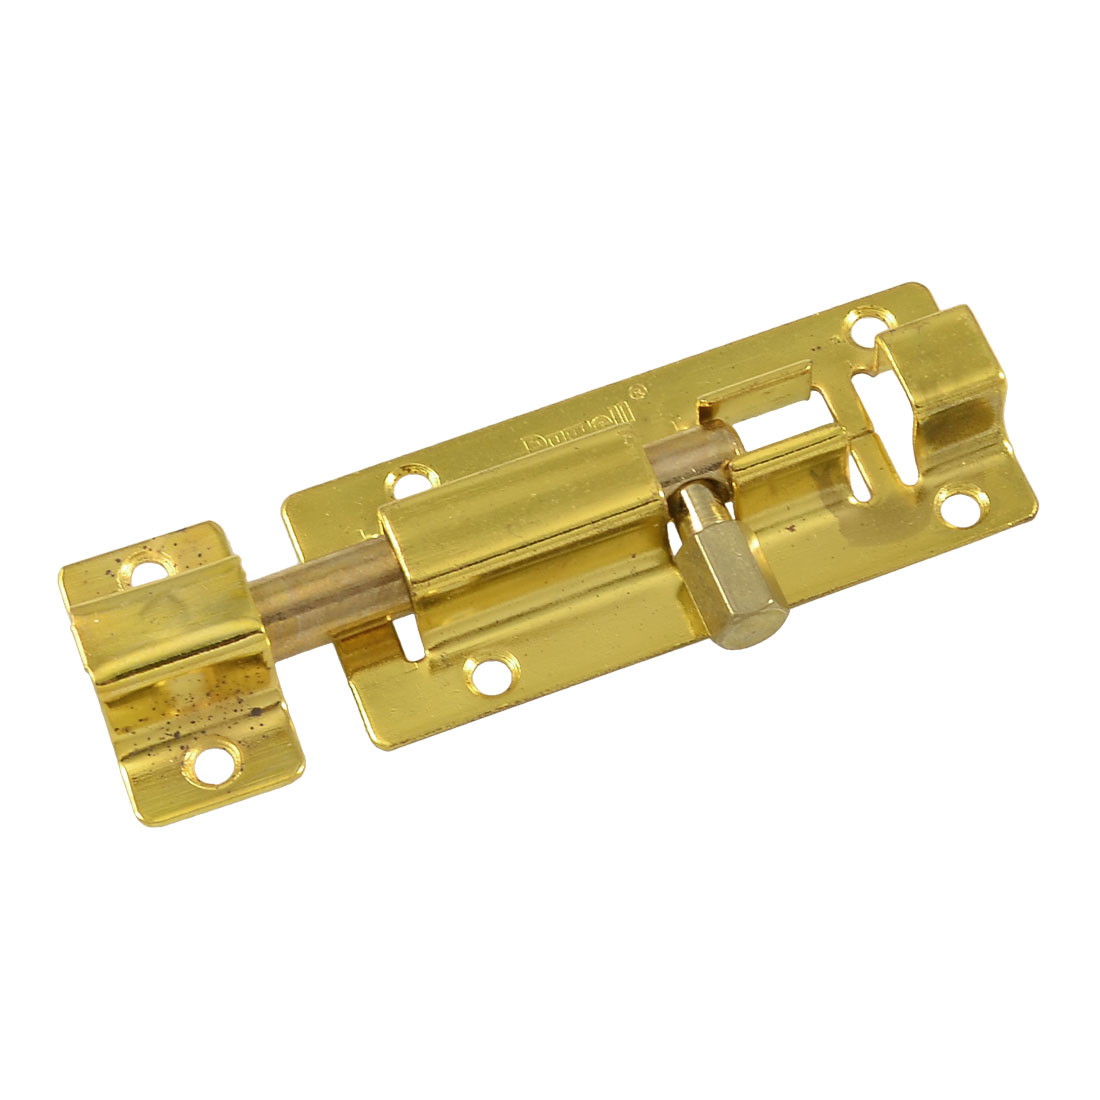 "2.9"" Long Door Safety Guard Padlock Clasp Gold Tone Barrel Bolt w 6 Screws"